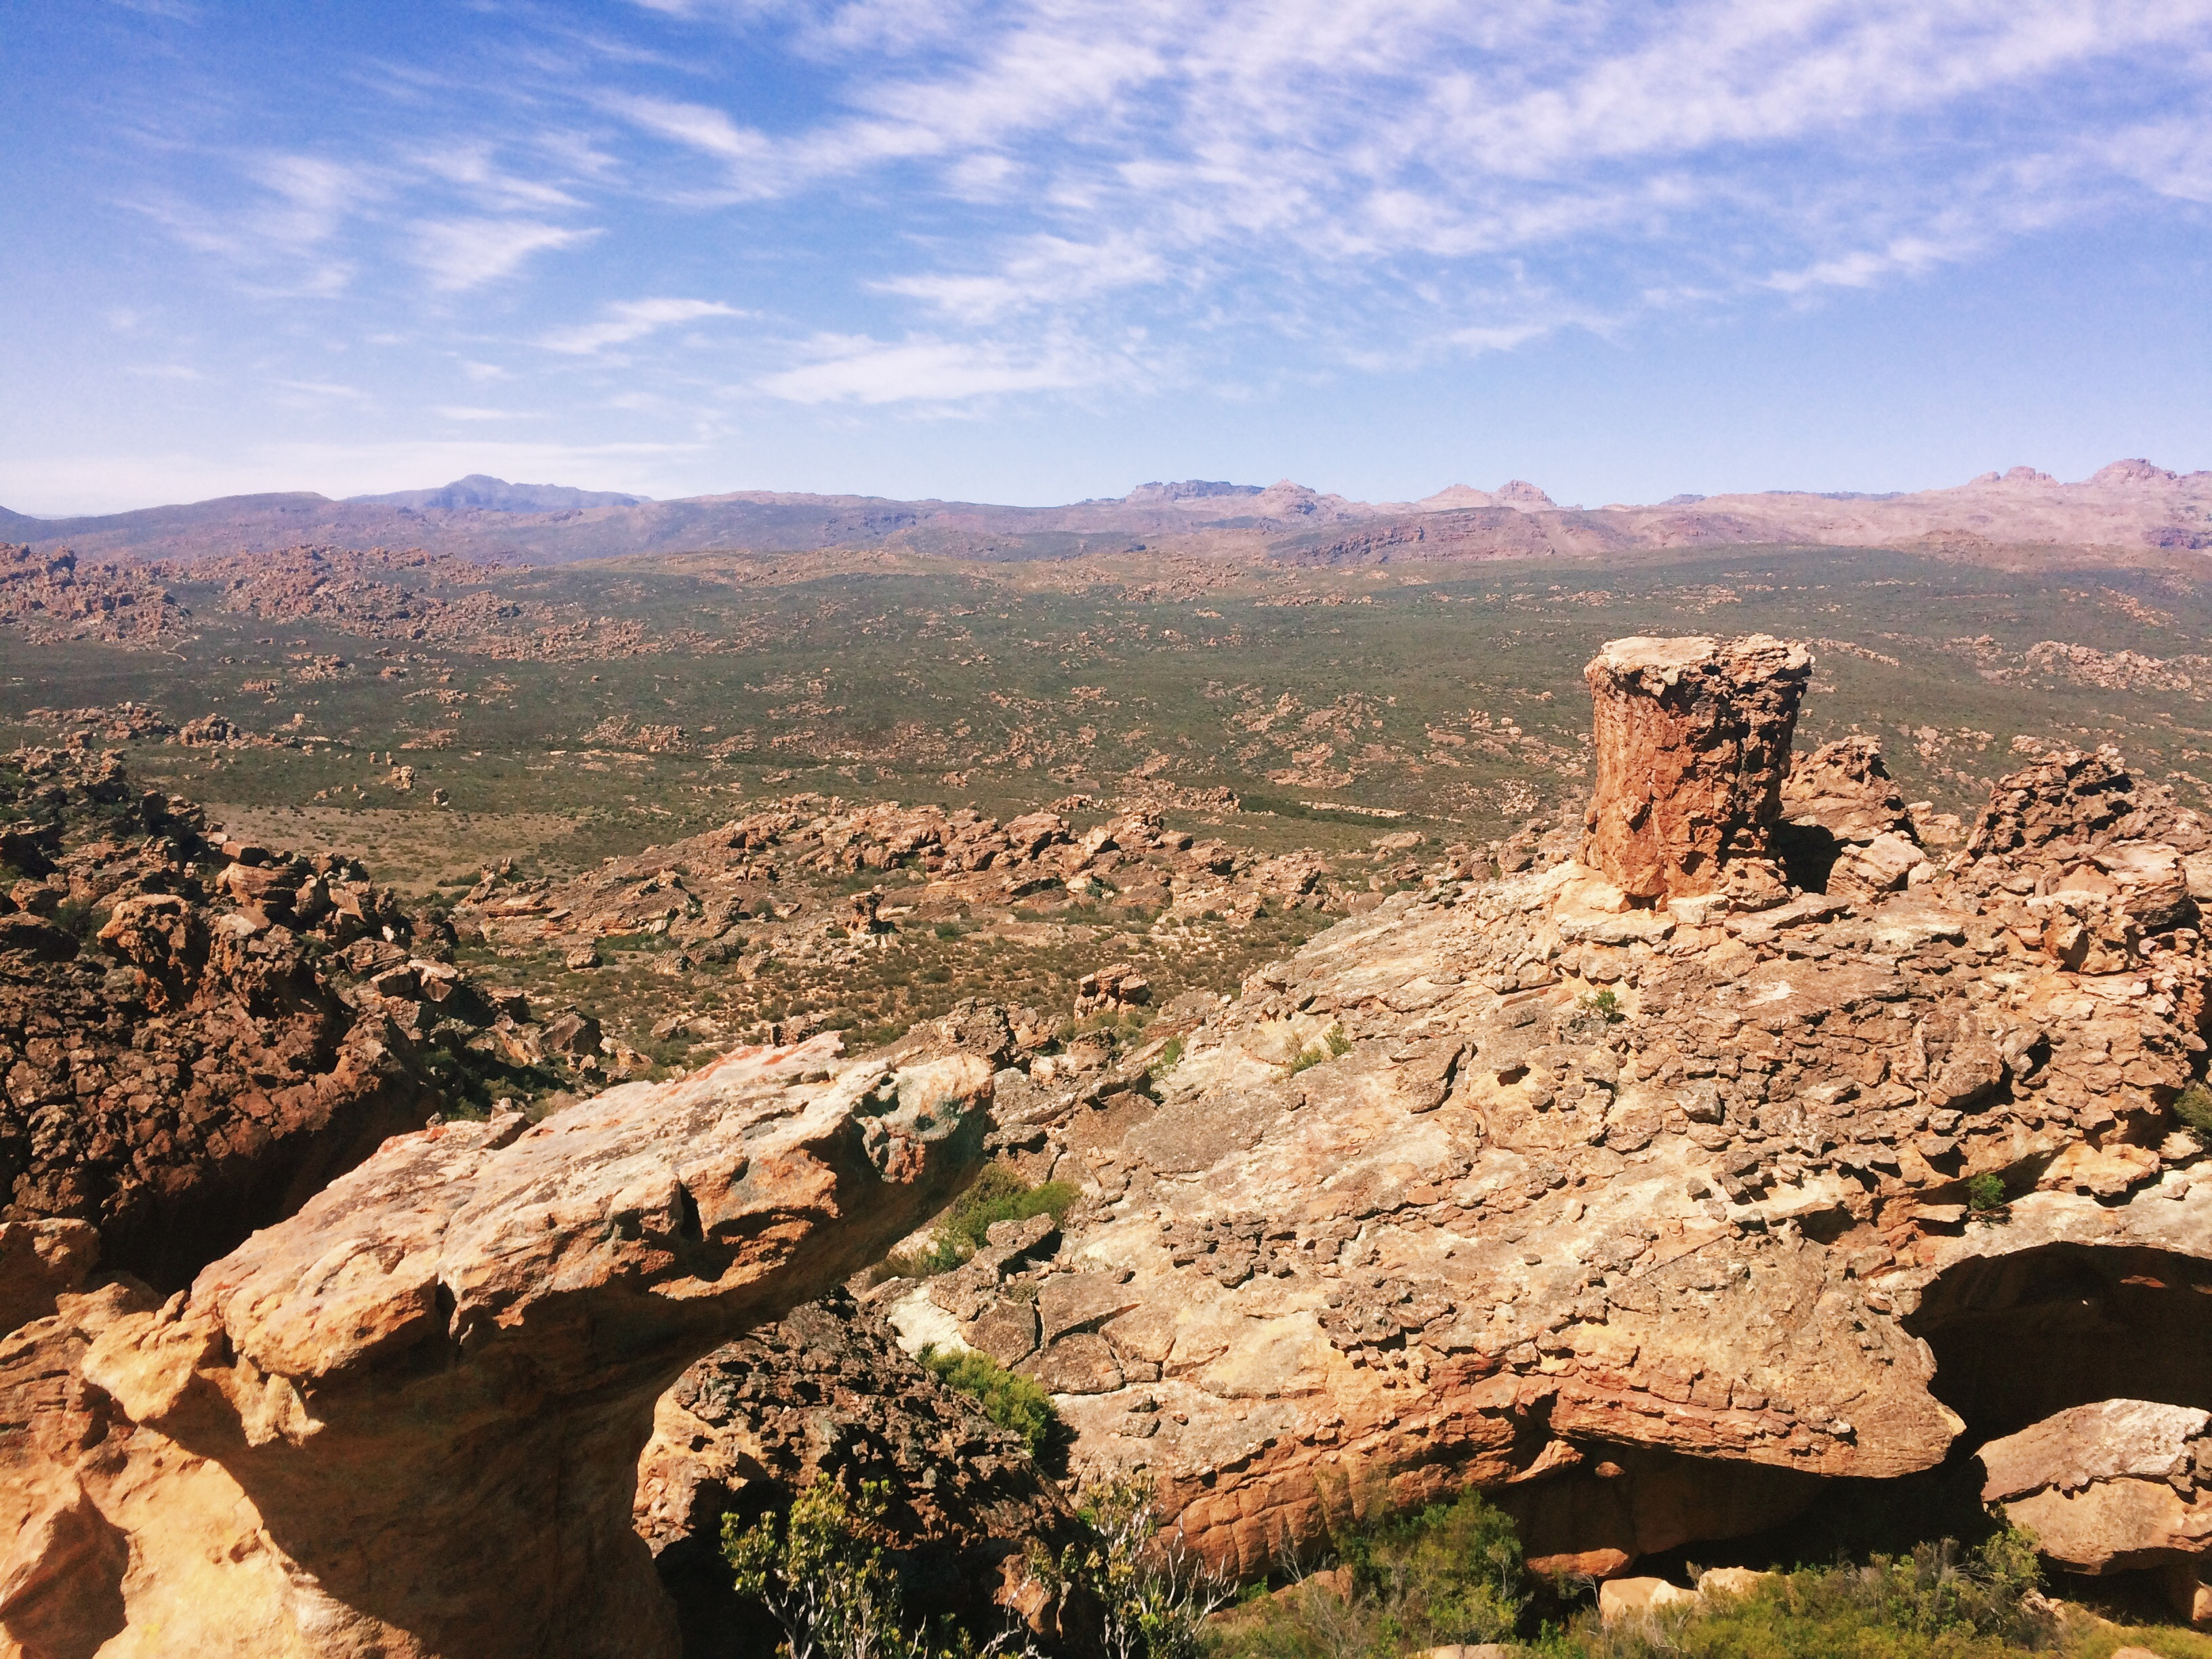 The red and rocky Cederberg landscape